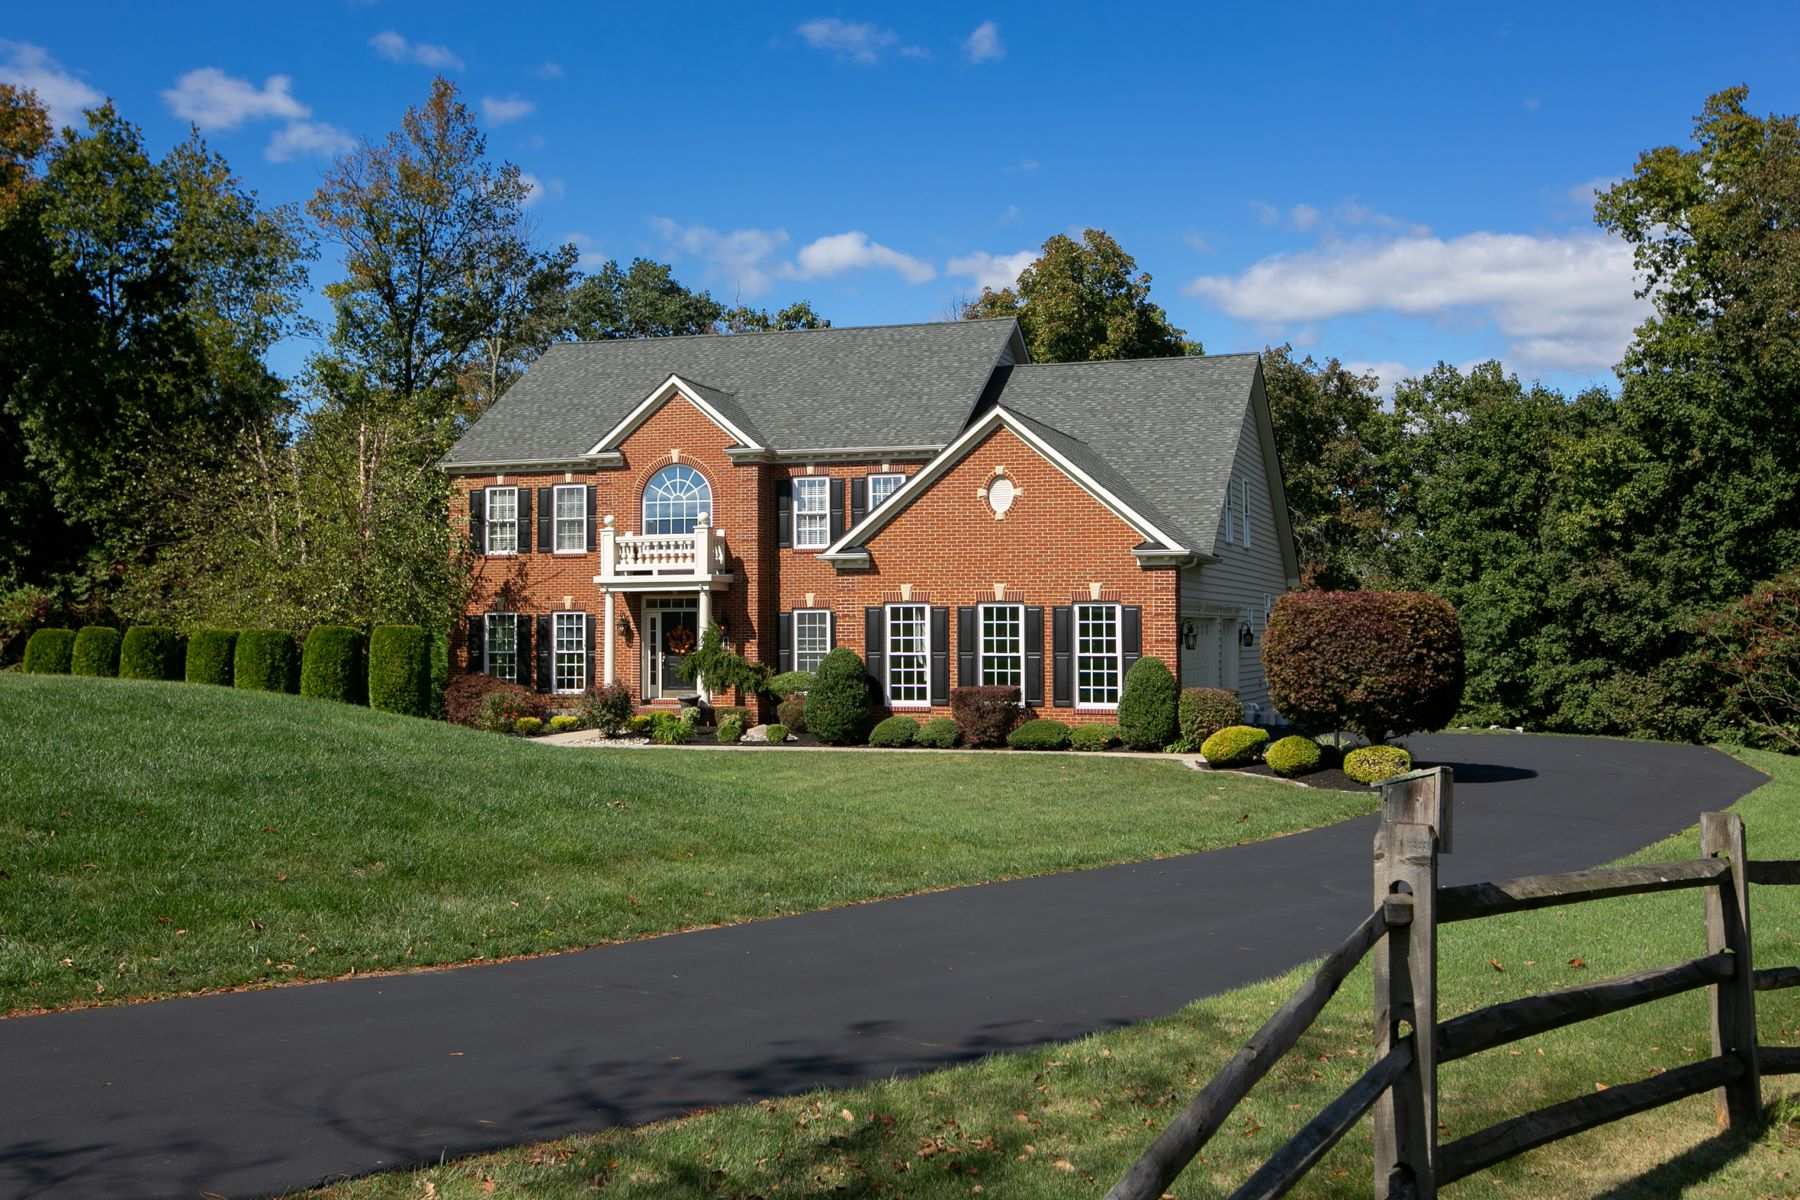 Single Family Homes for Sale at 149 PARSONS LN Newtown, Pennsylvania 18940 United States